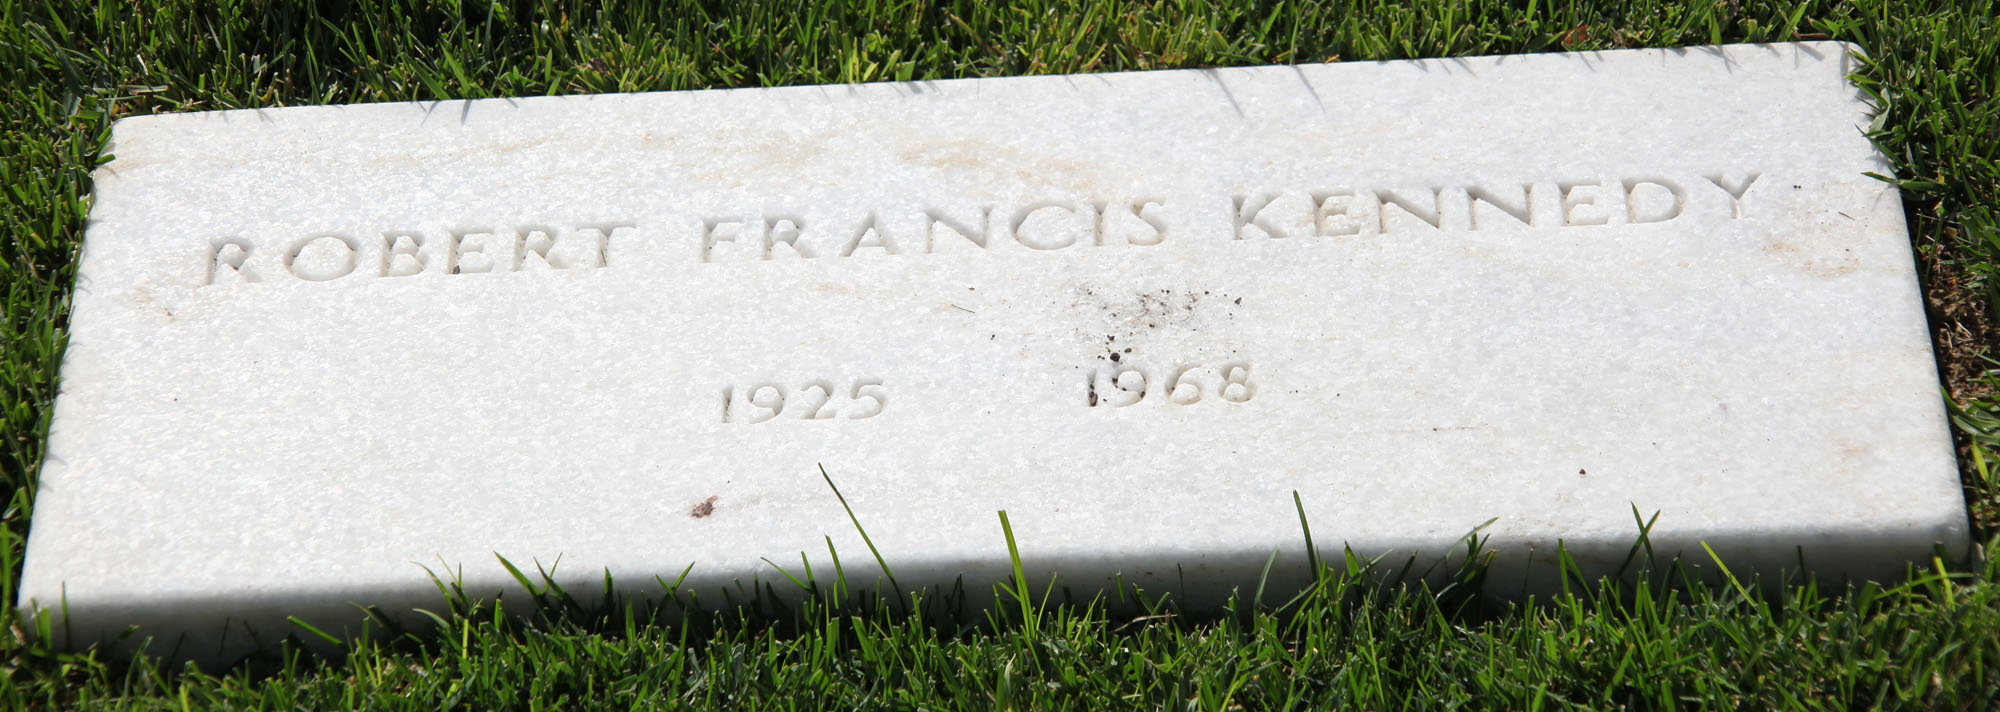 Robert F Kennedy's Headstone at Arlington National Cemetery. Photo by Tim Evanson, Flickr